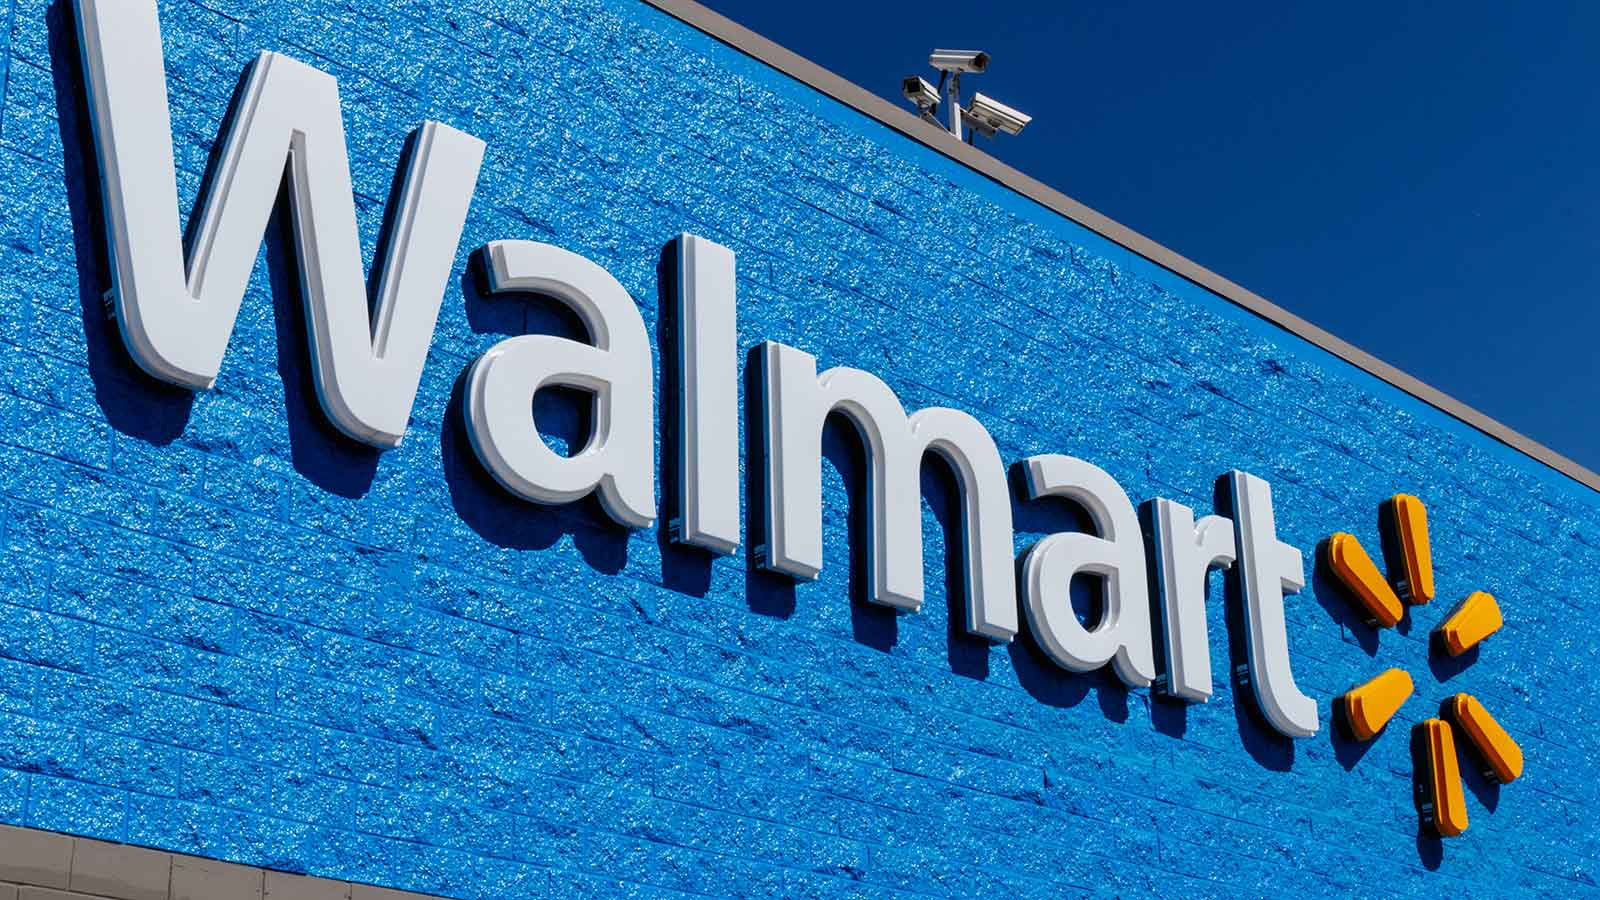 Walmart Stock Phone Number >> Wmt Stock Walmart S Trading At An All Time High Time To